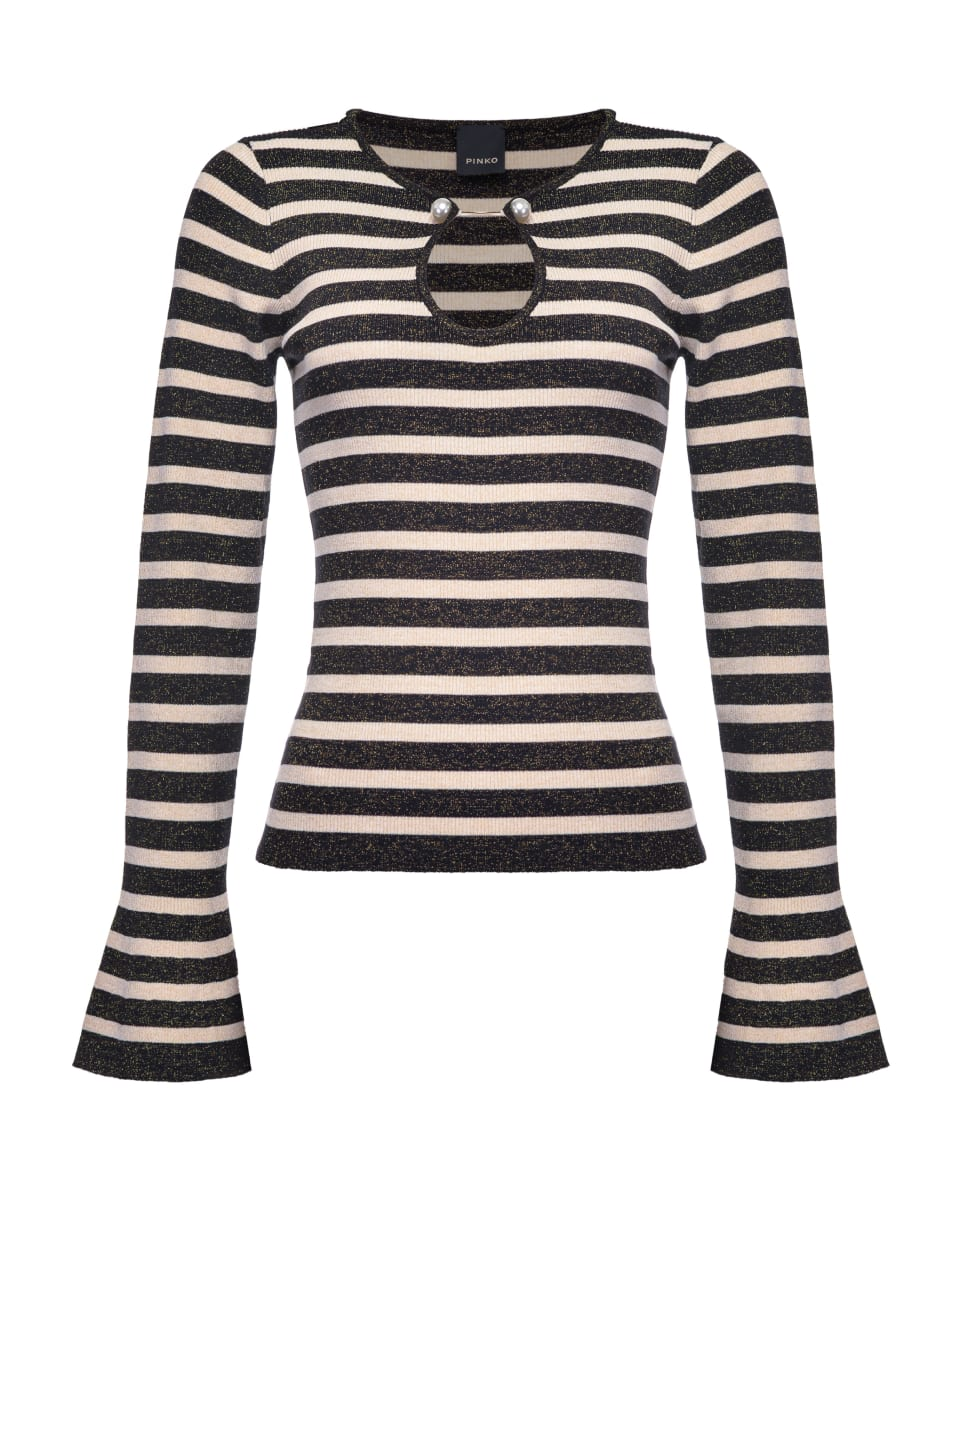 Striped top with pearls - Pinko